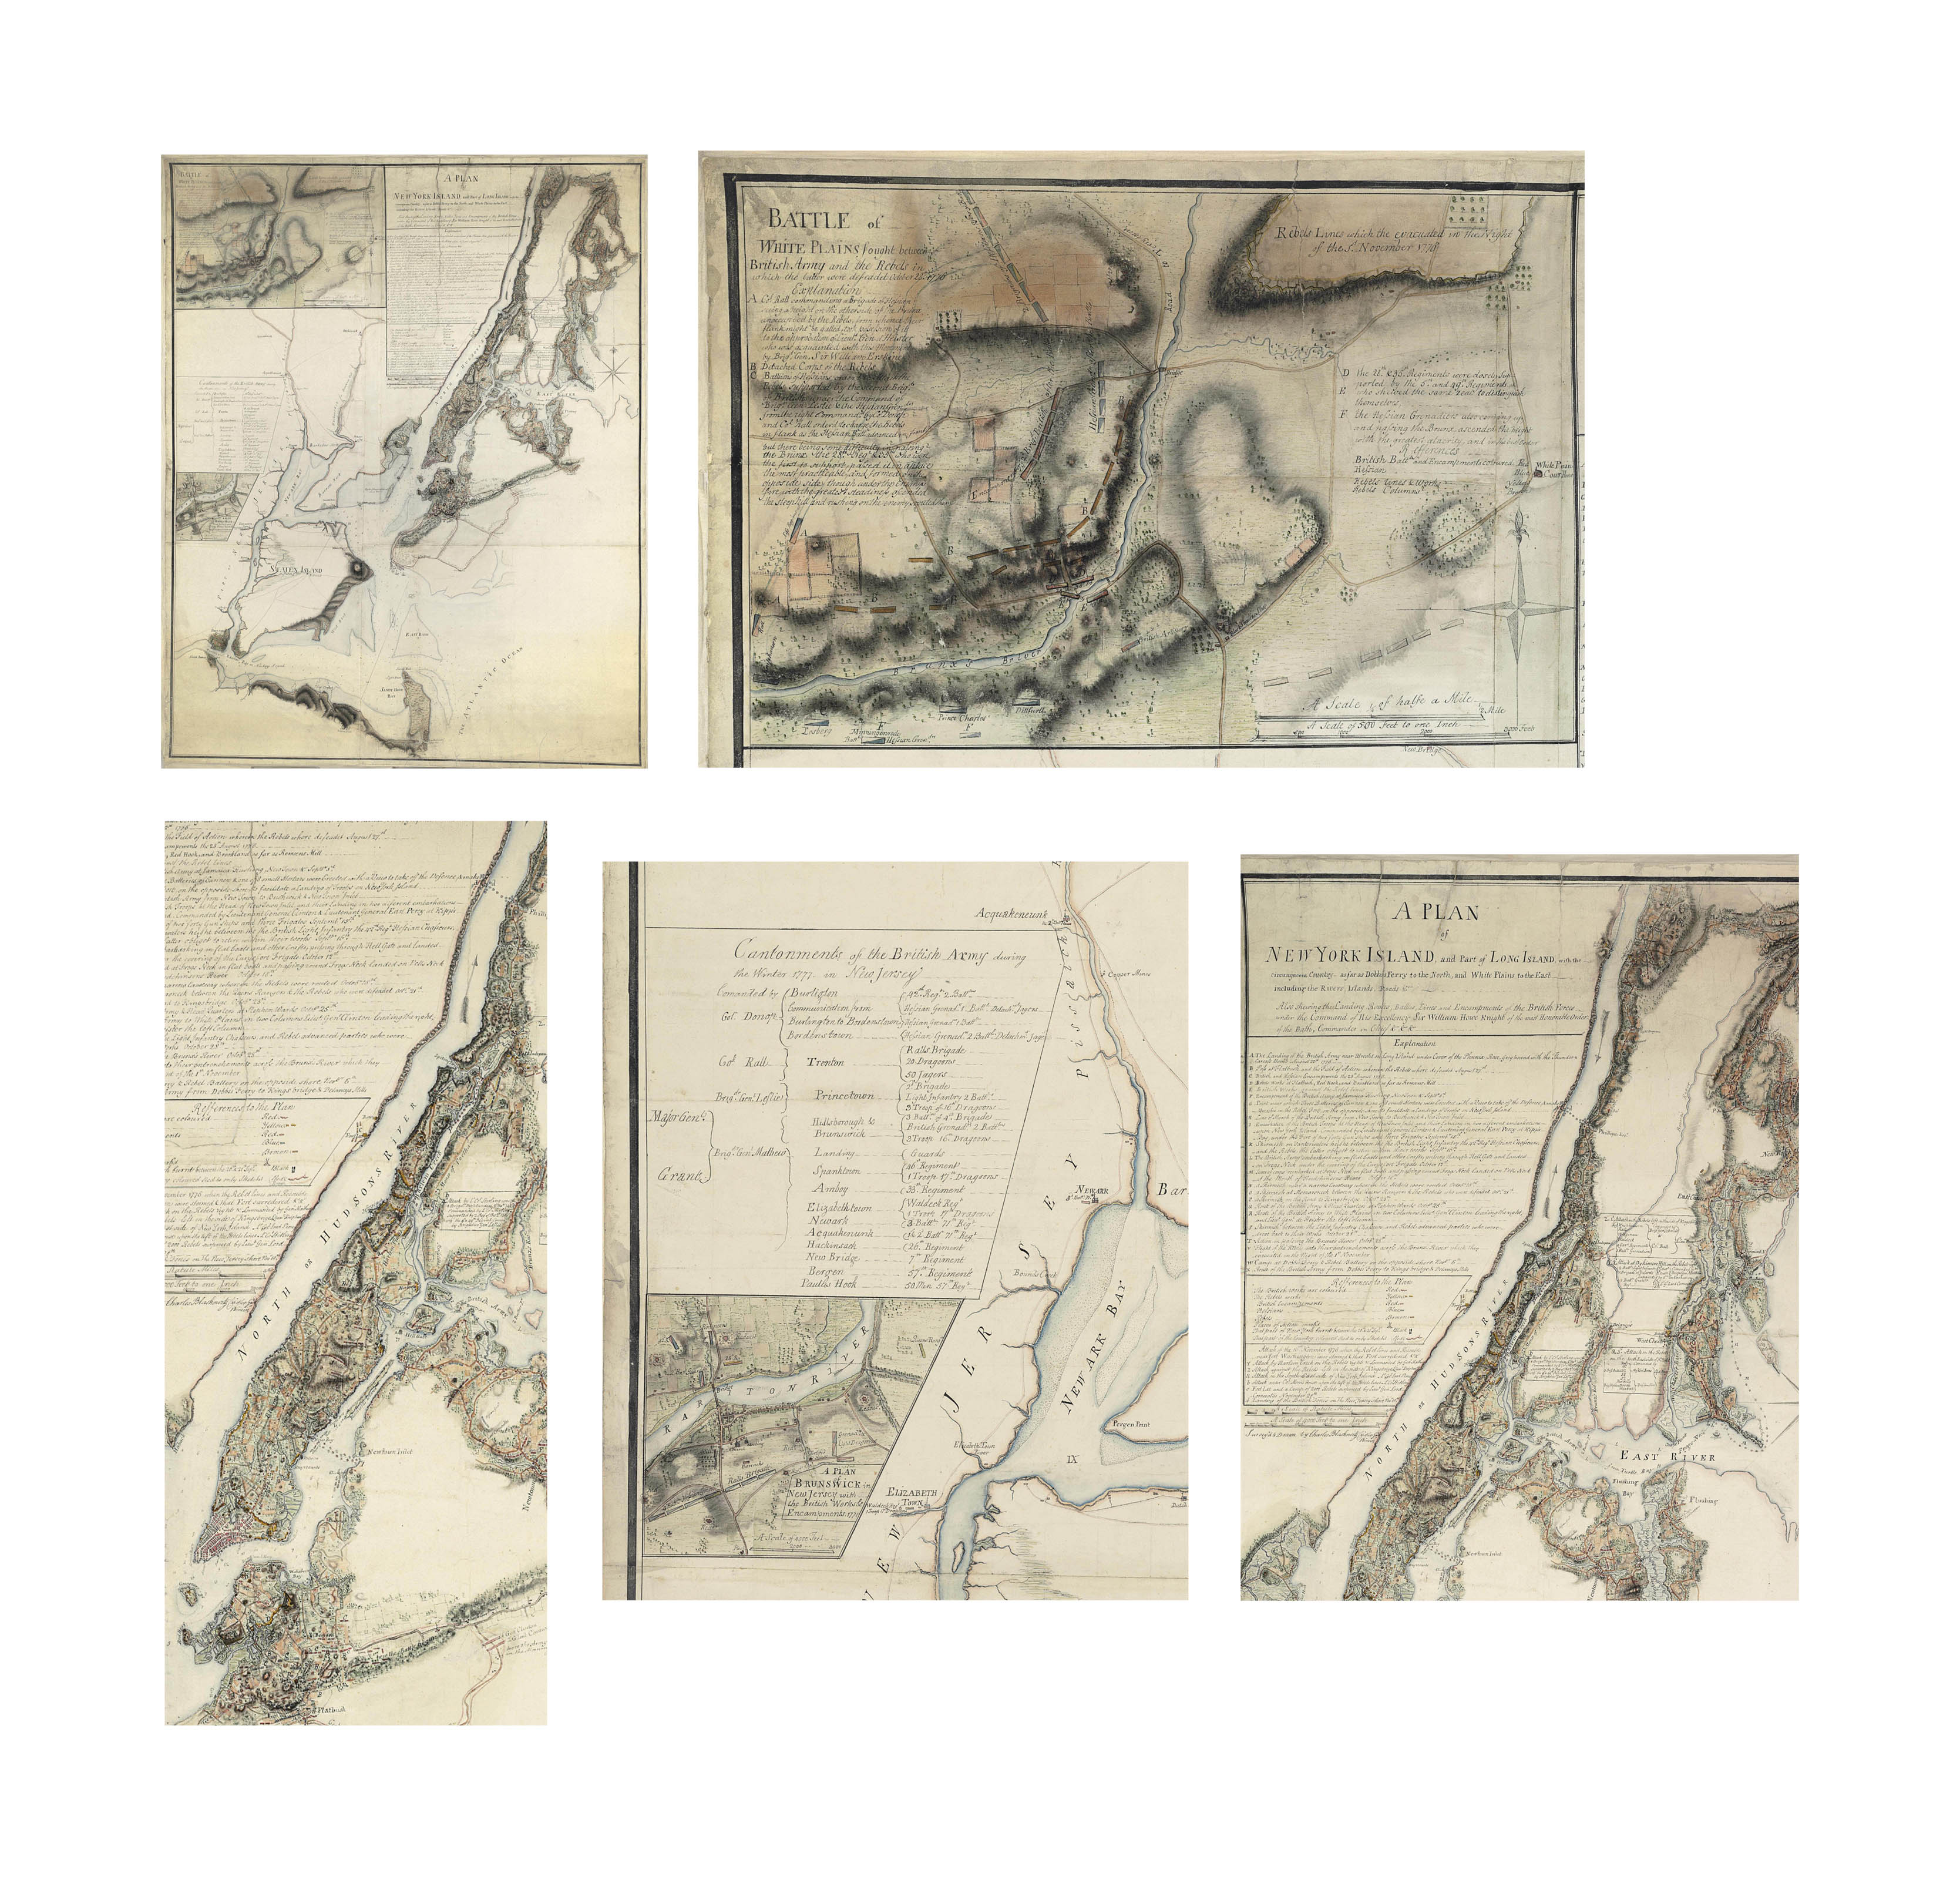 "[REVOLUTIONARY WAR]. BLASKOWITZ, Charles (c.1743-1823). ""A Plan of New York Island, and Part of Long Island, with the circumjacent Country - as far as Dobbs's Ferry to the North, and White Plains to the East including the Rivers, Islands, Roads &ca - Also shewing the Landing Routes, battles, Lines and Encampments of the British Forces under the Command of His Excellency Sir William Howe Knight of the most Honorable Order of the Bath, Commander in Chief &ca &ca &ca.,"" with inset maps: ""Battle of White Plains fought between British Army and the Rebels in which the latter were defeated October 28th 1776"" and ""A Plan of Brunswick New Jersey with the British Works & Encampments. 1777"". Signed: ""Survey'd & Drawn by Charles Blaskowitz Capt of the Guides & Pioneers."" [New York, 1777]."